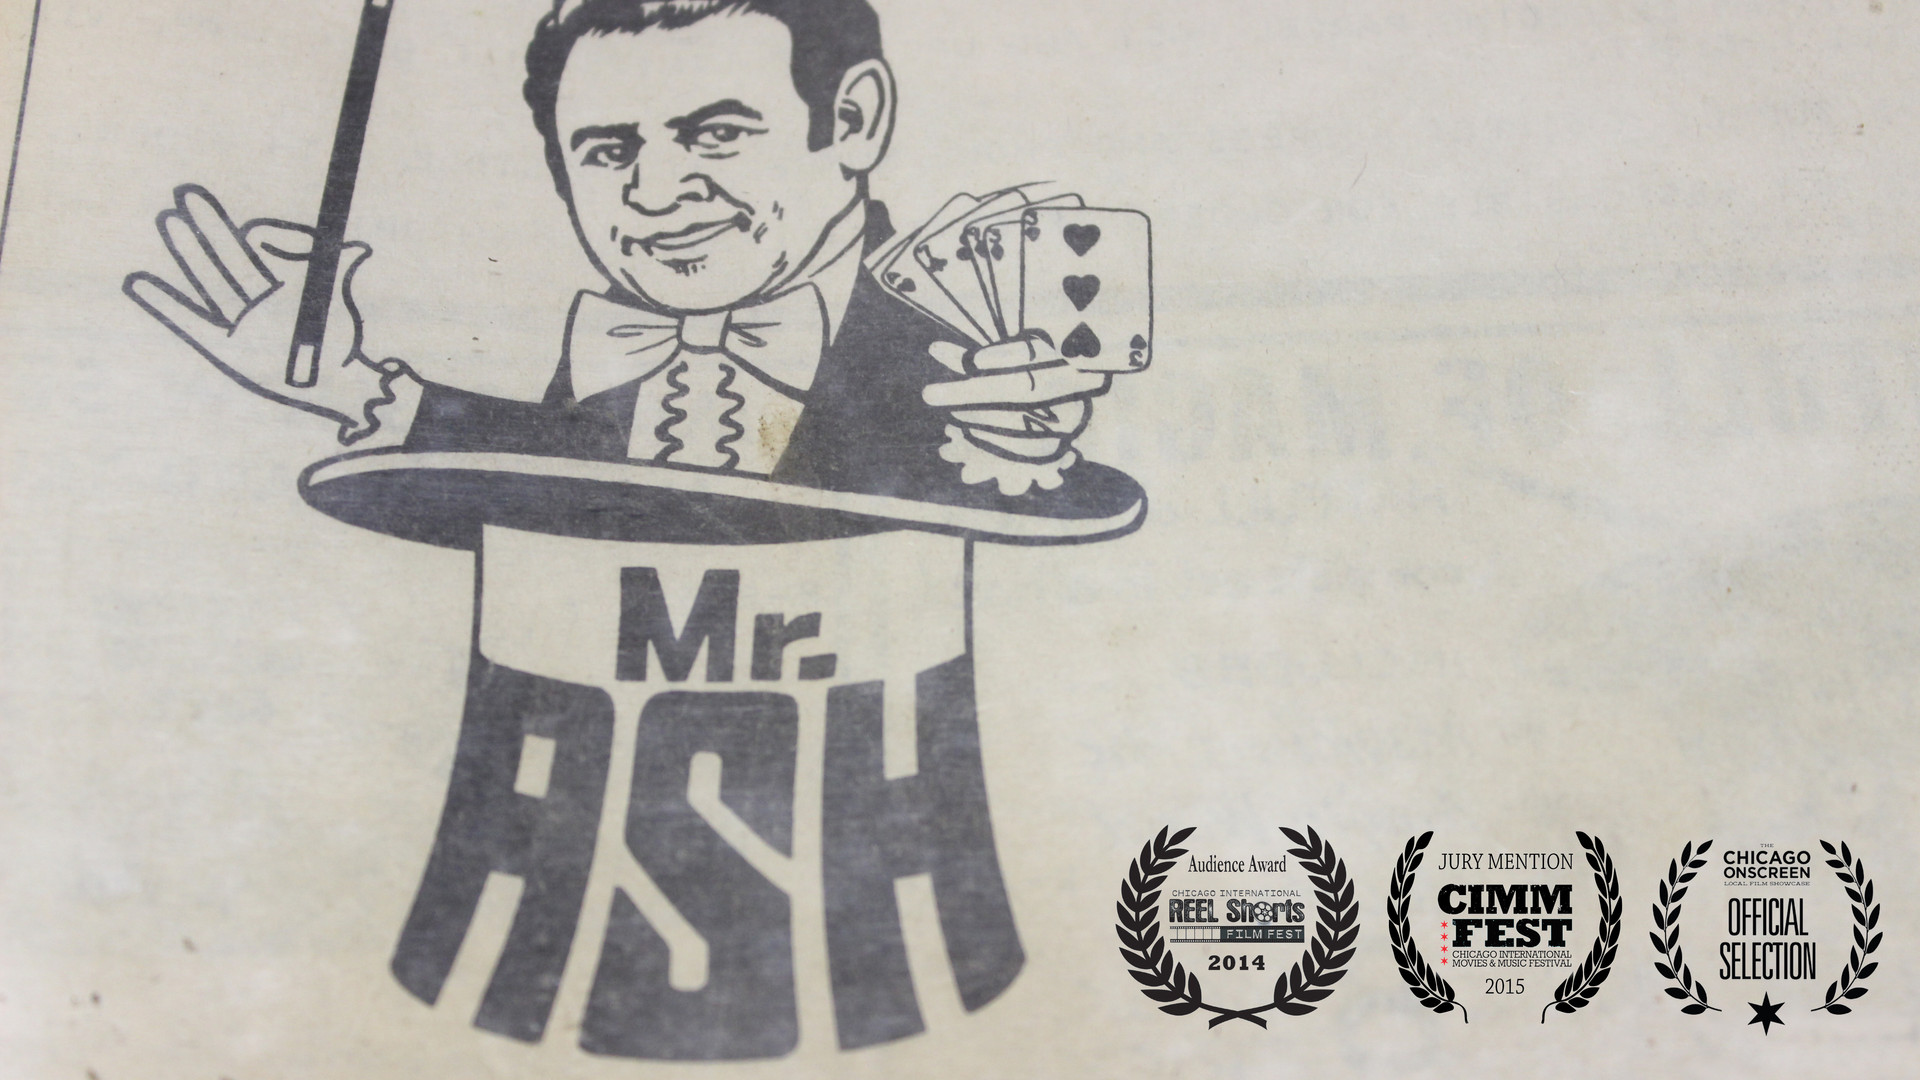 The Amazing Mr. Ash (2014)